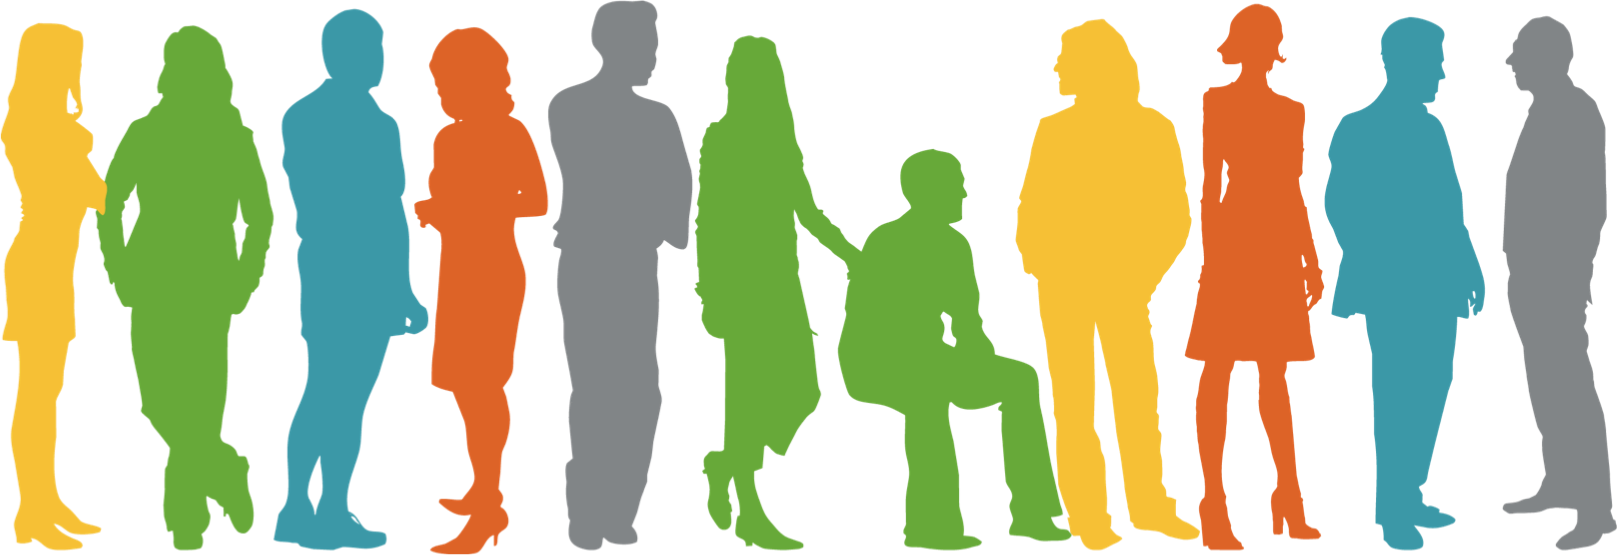 Human clipart community person. People transparent png pictures